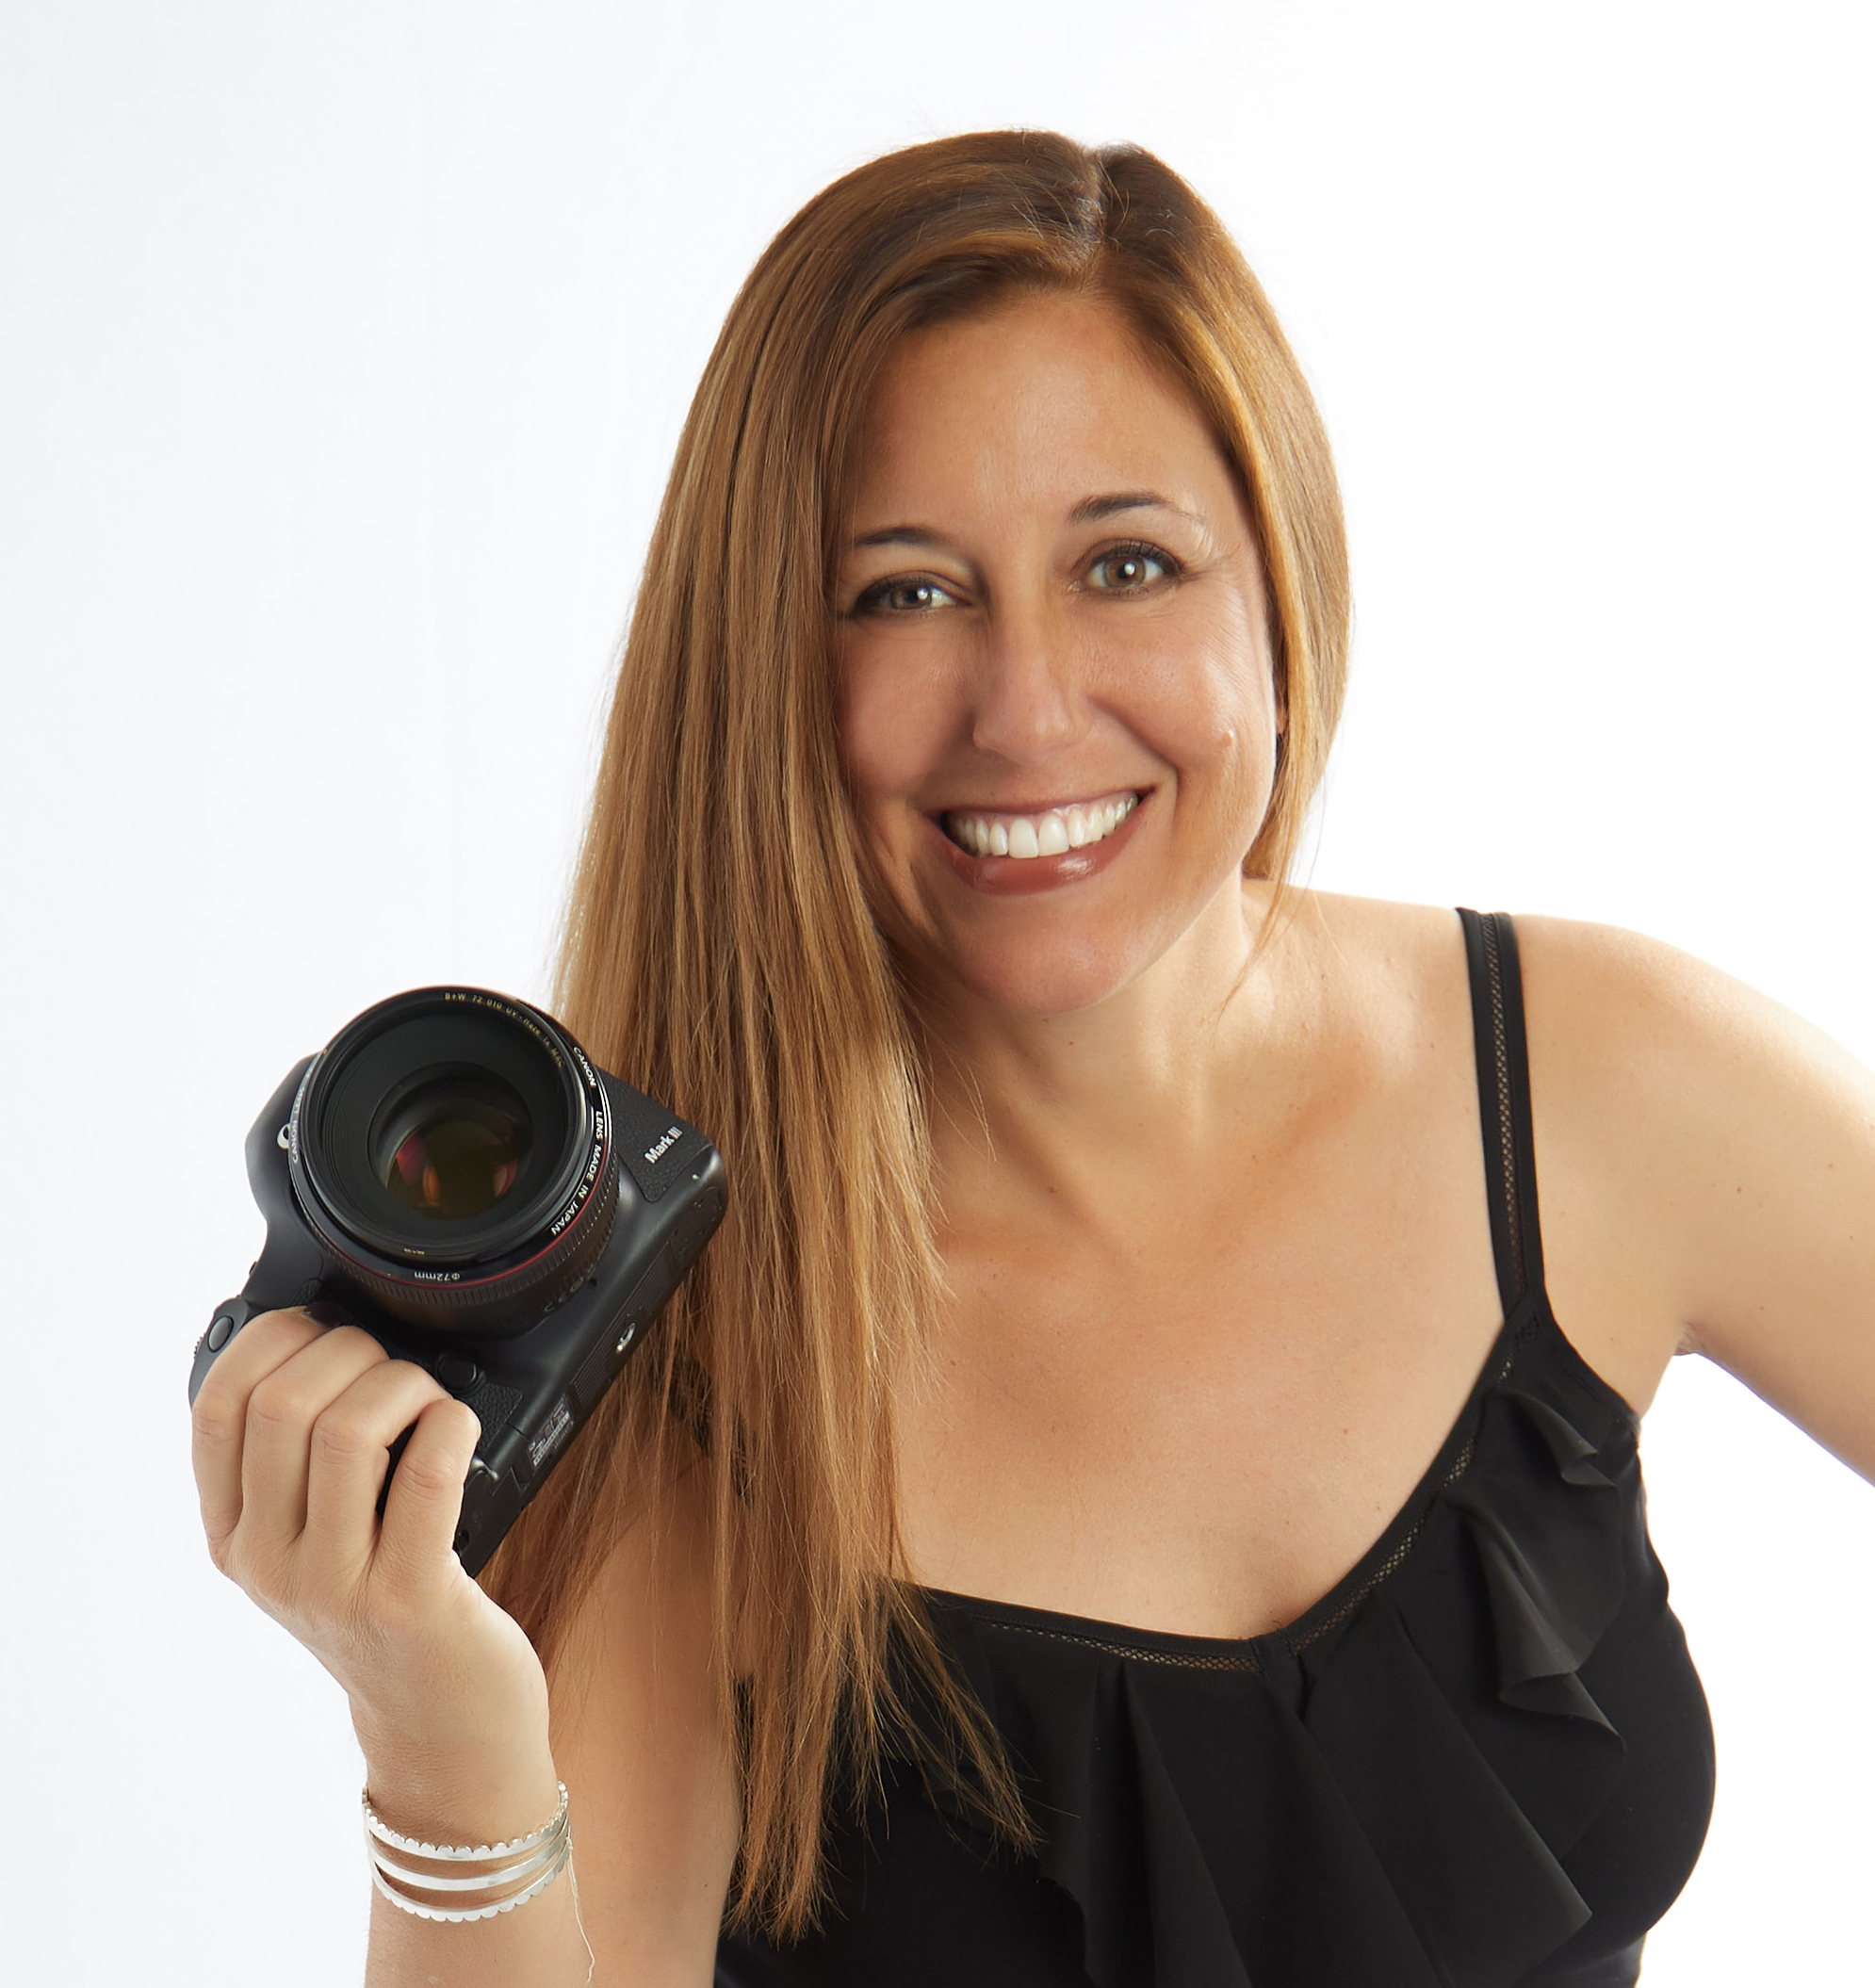 Missy Goldwyn, Boudoir Photographer in the San Francisco Bay Area, is smiling and holding a camera.